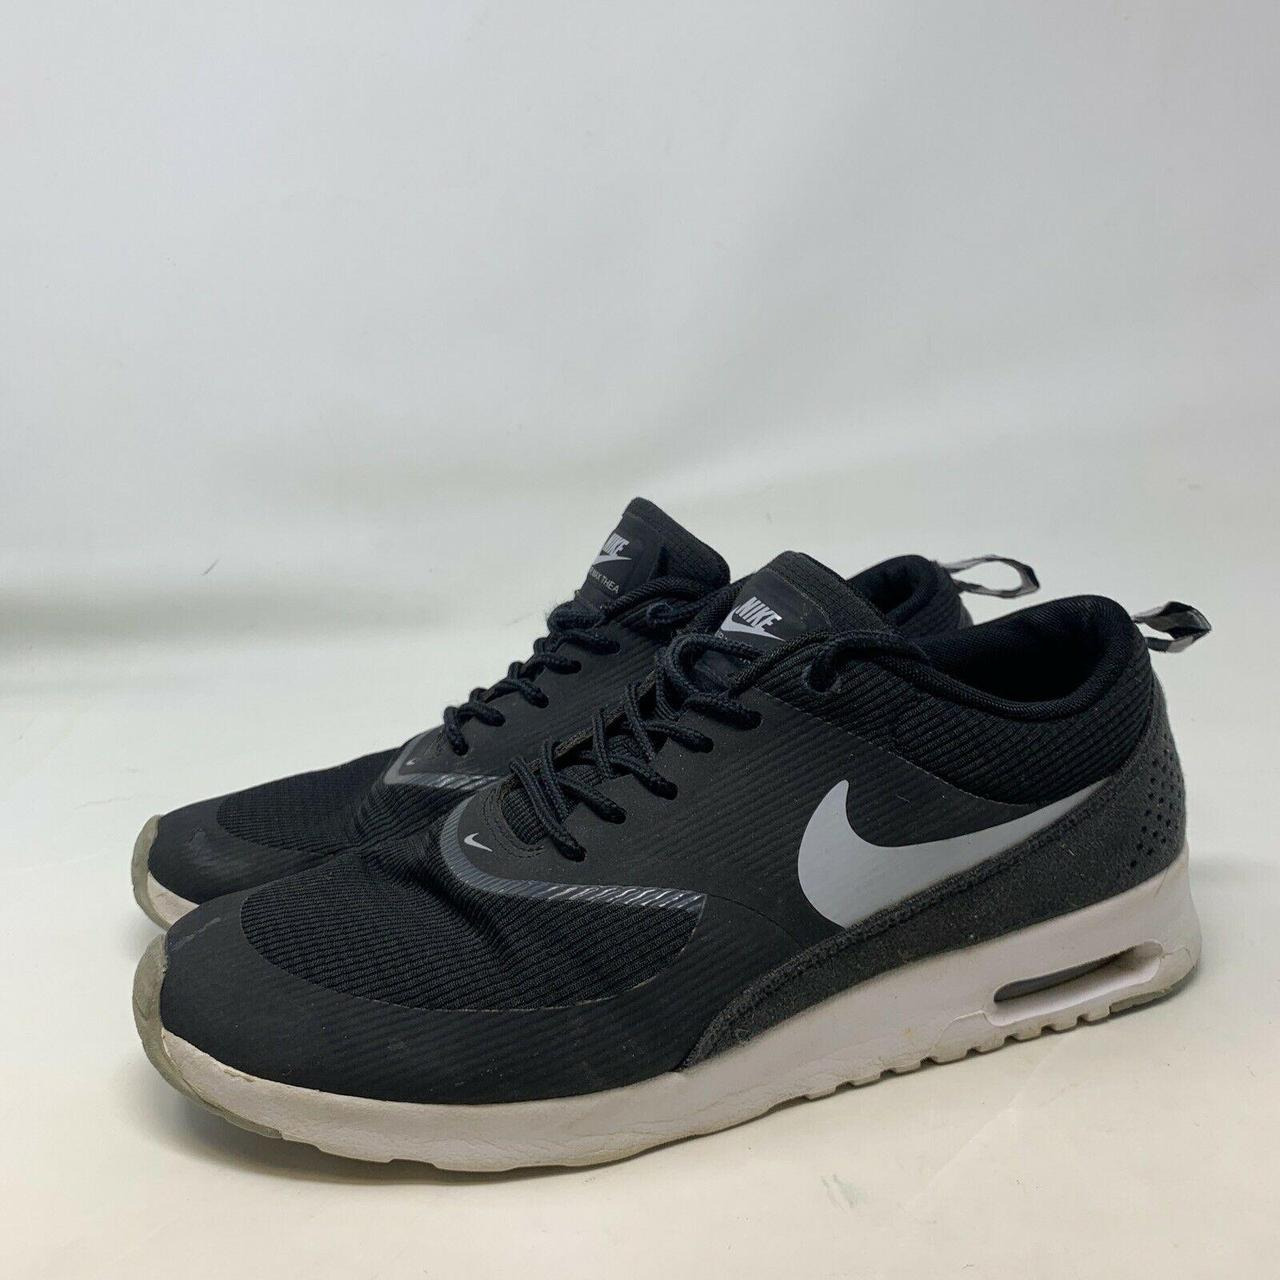 Product Image 1 - Nike Air Max Thea Women's